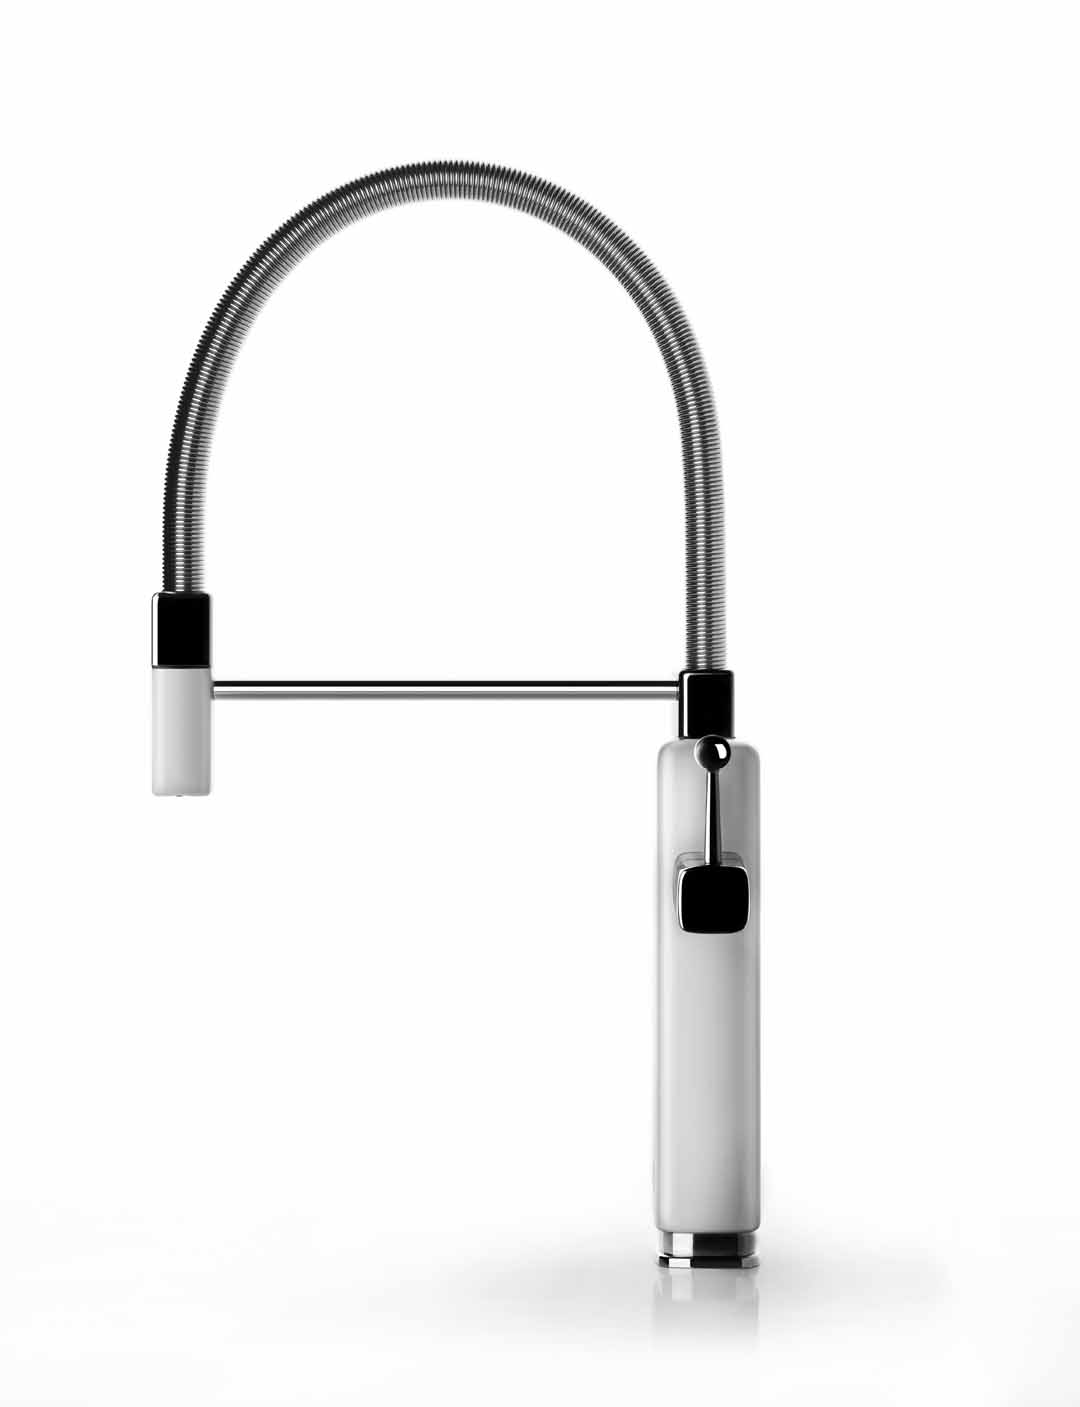 Get HAPPY with the latest Gessi kitchen mixer range